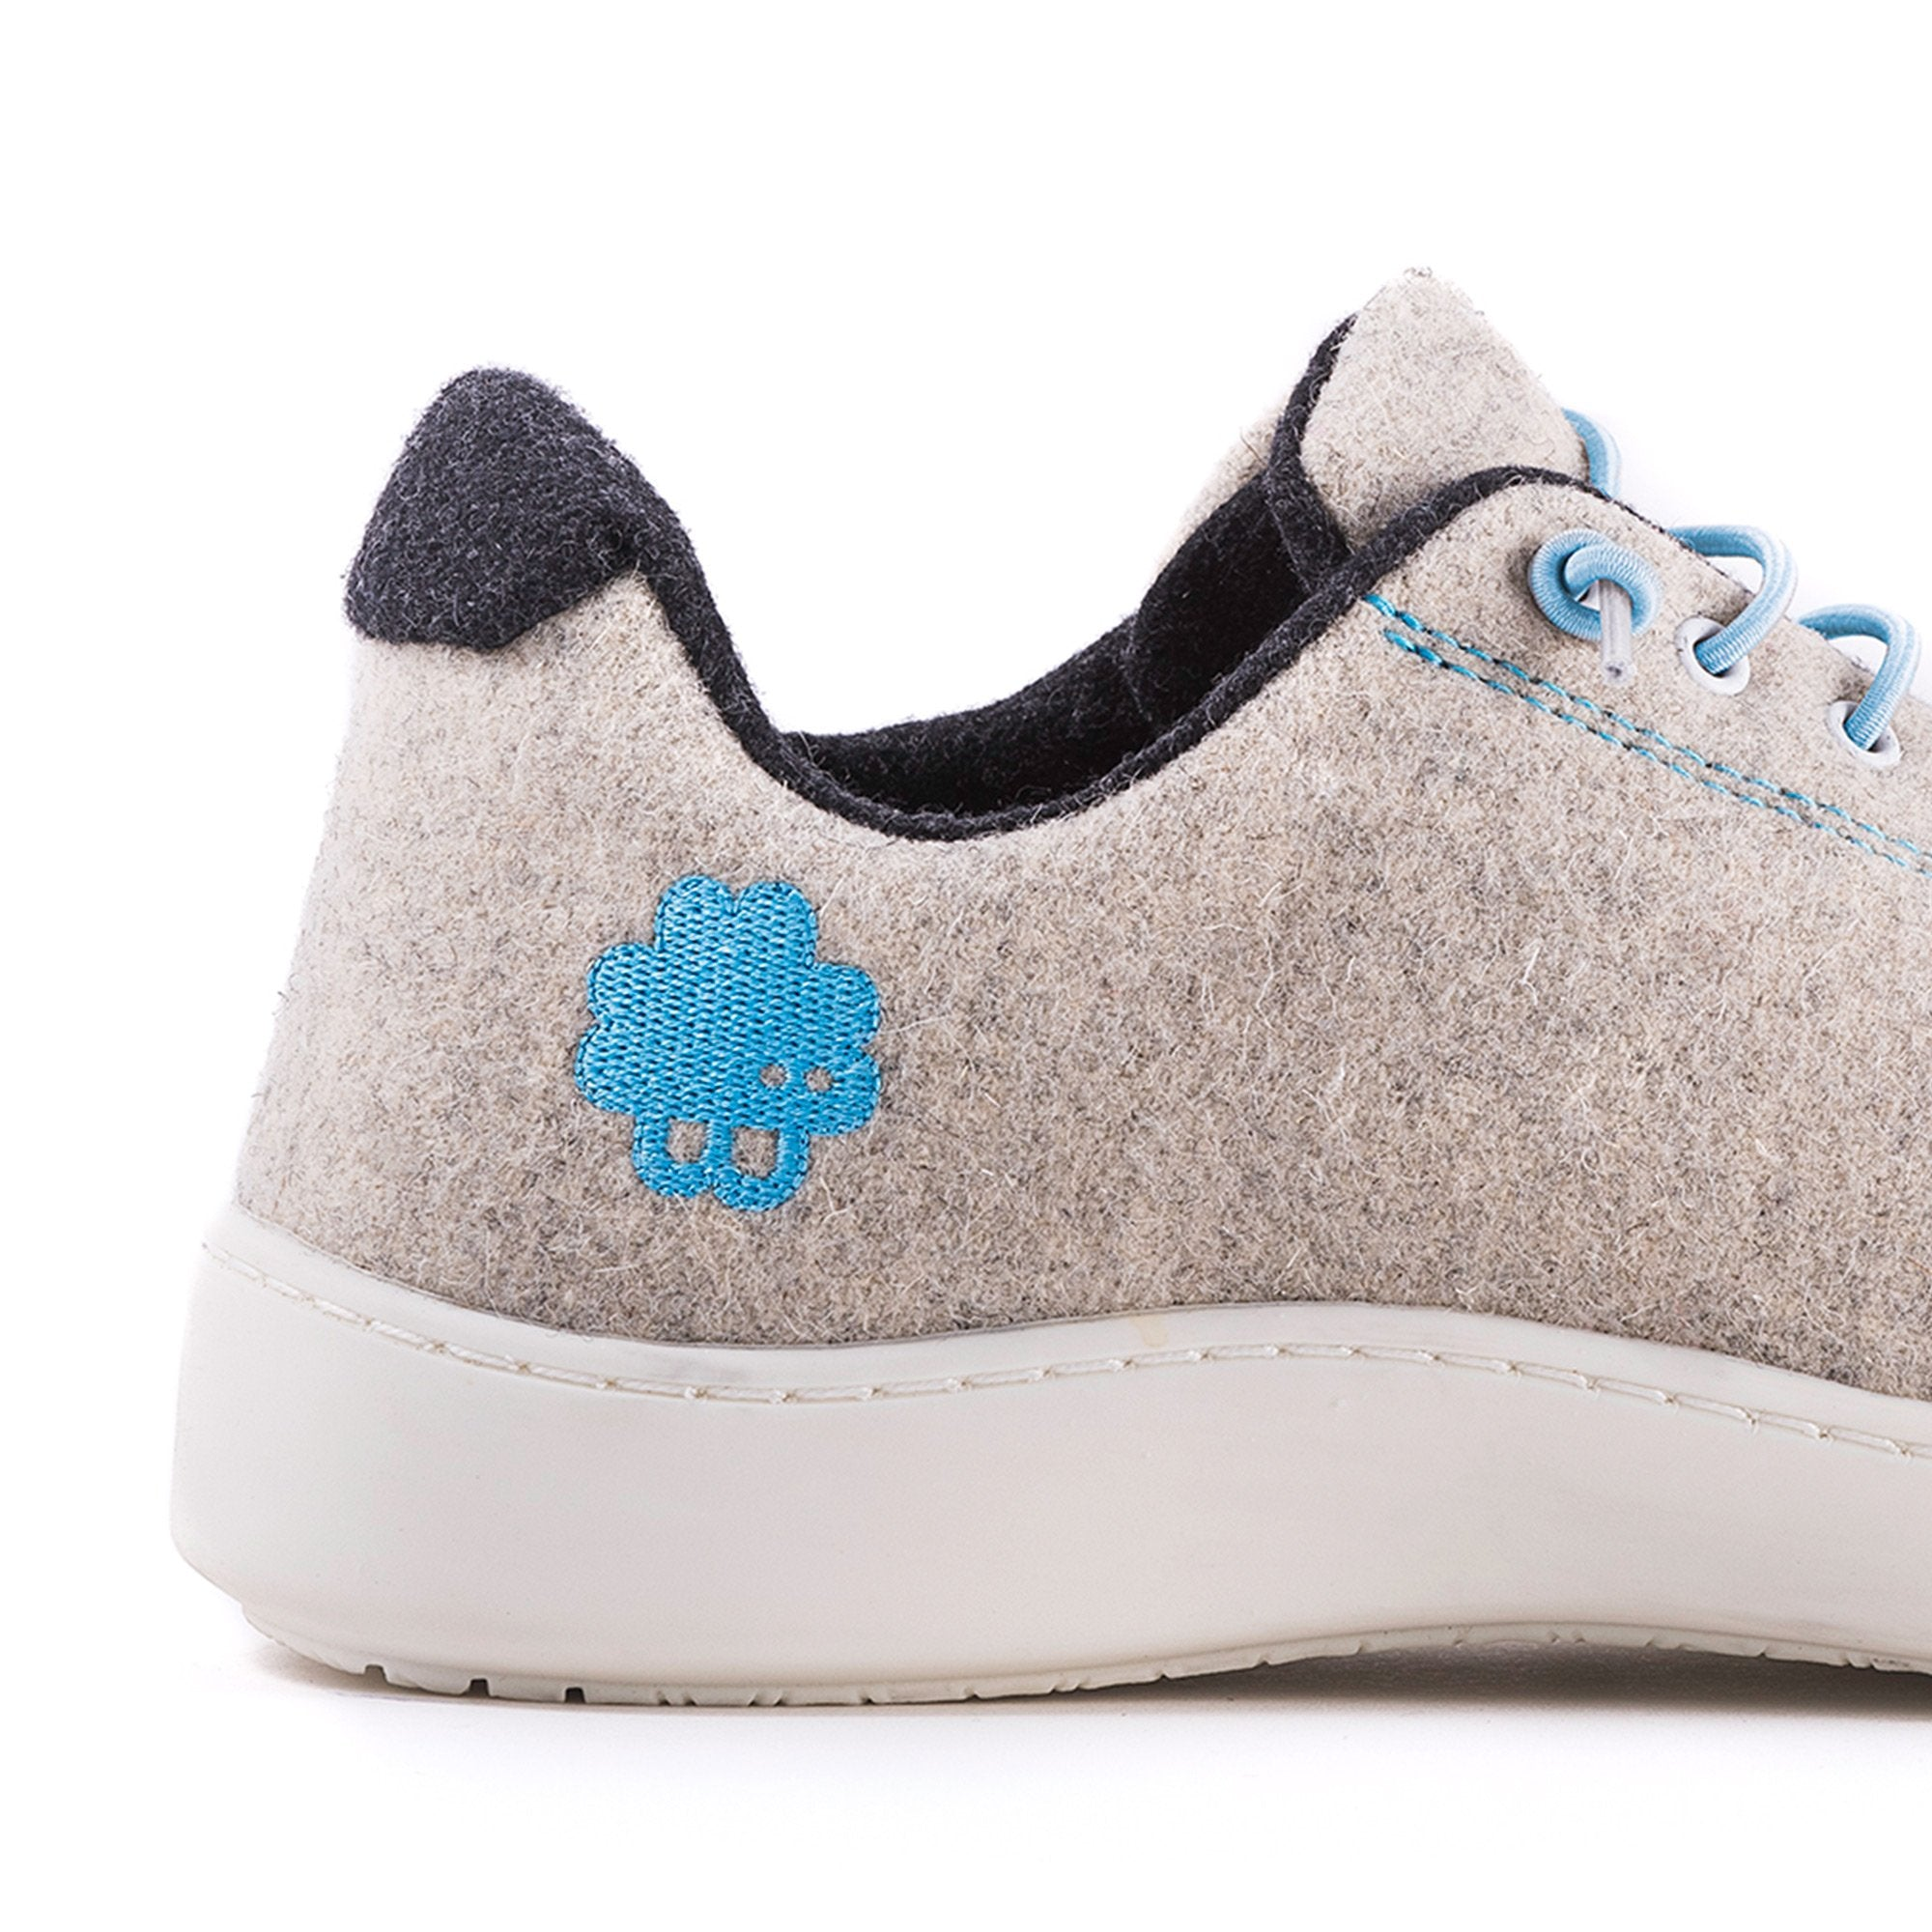 Urban Wooler Natural / Light Blue